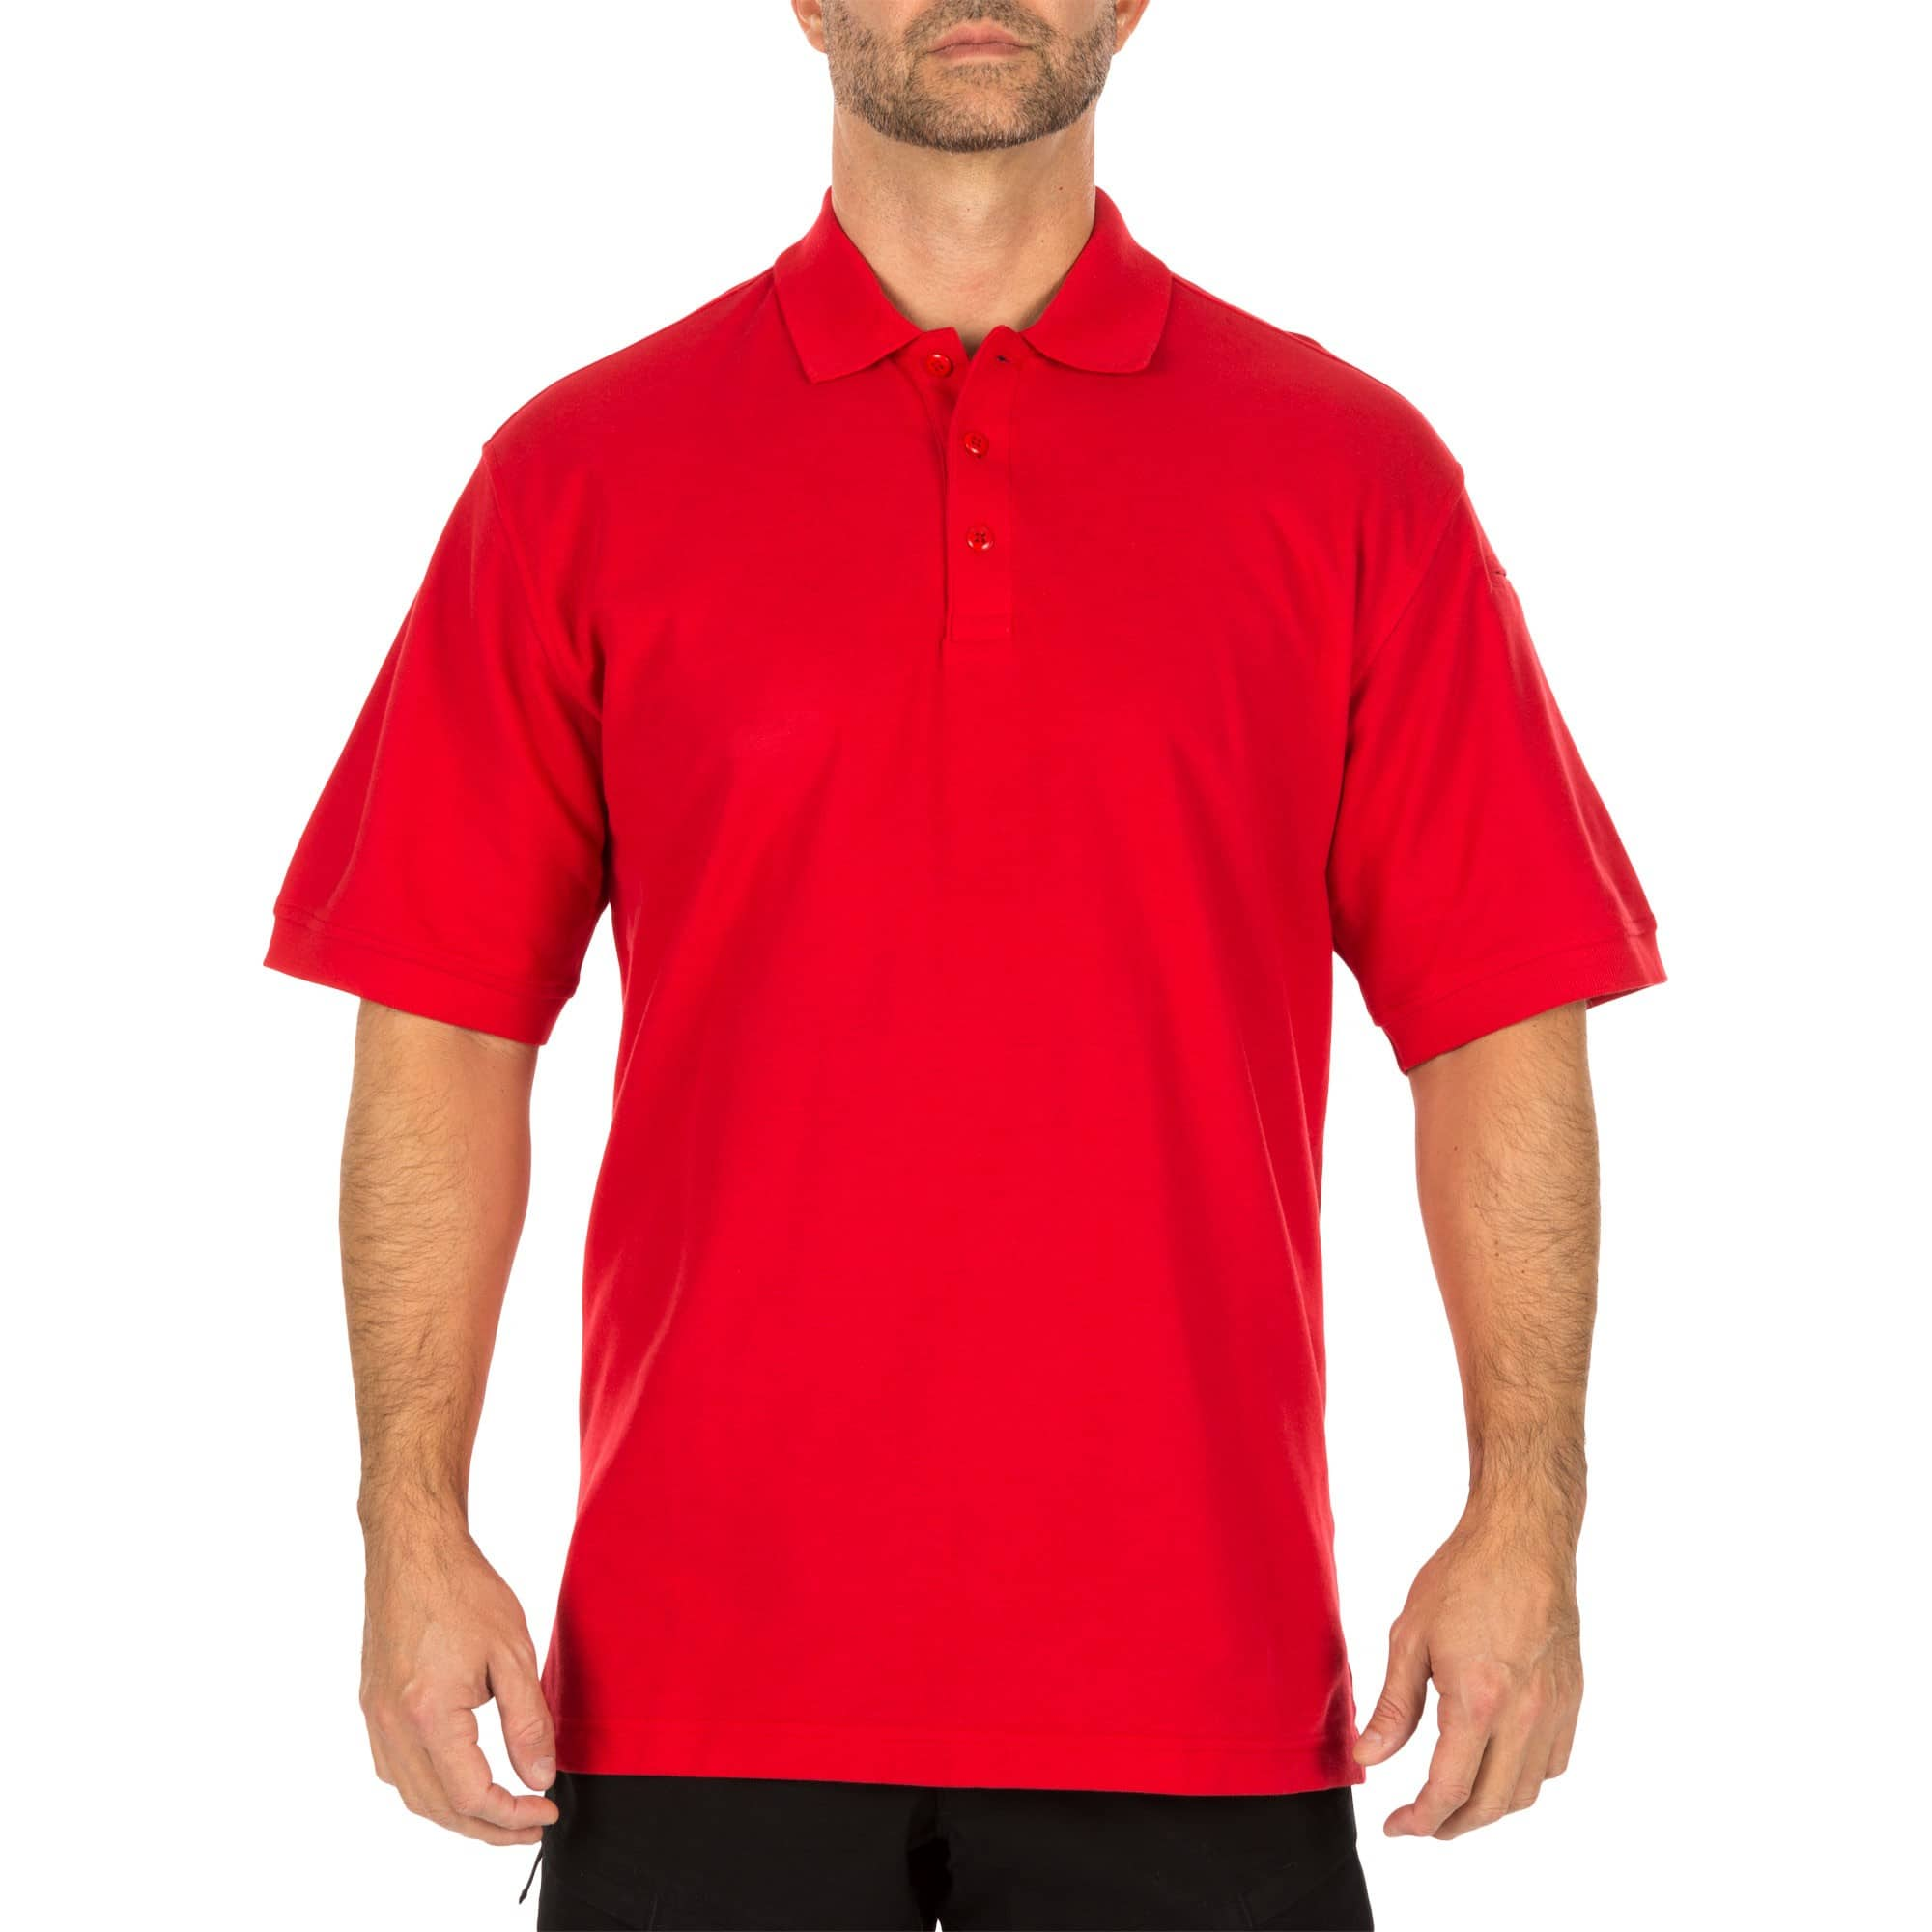 5.11 Tactical Coupon: Extra 20% Off Sitewide: Utility Polo Shirt  $16 & More + Free S&H